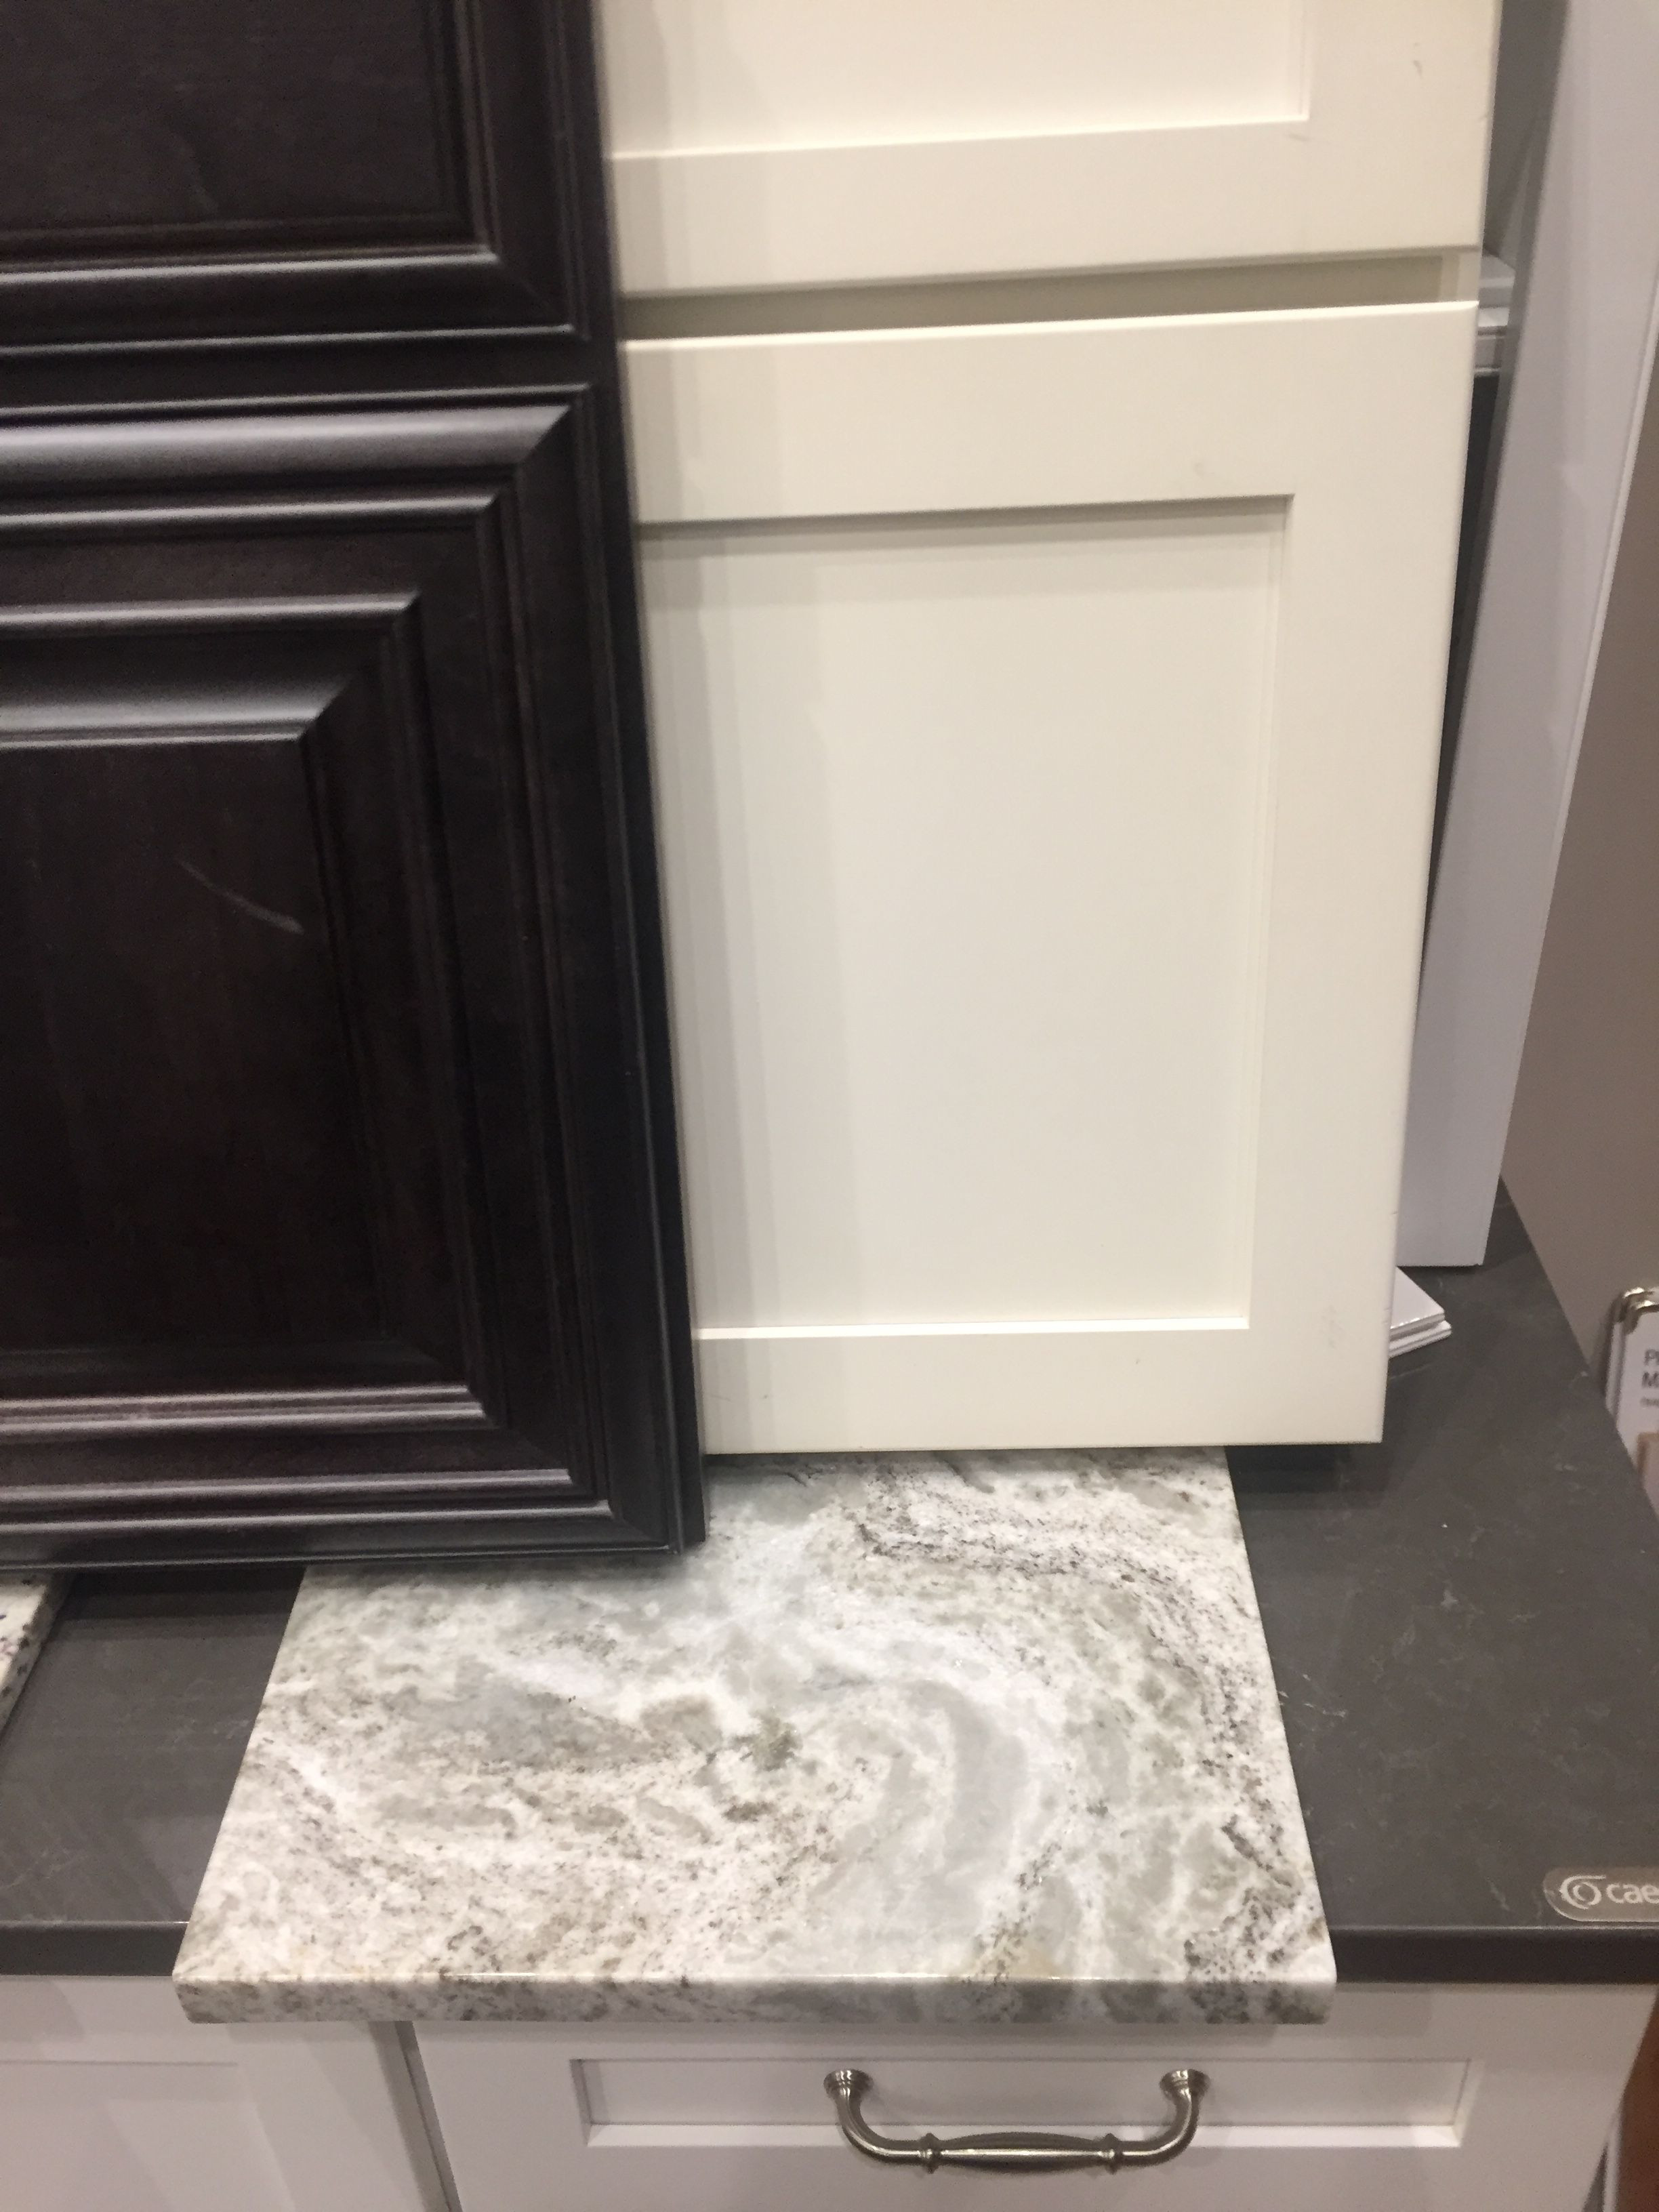 Off White Cabinets Onyx Island Fantasy Brown Granite ️